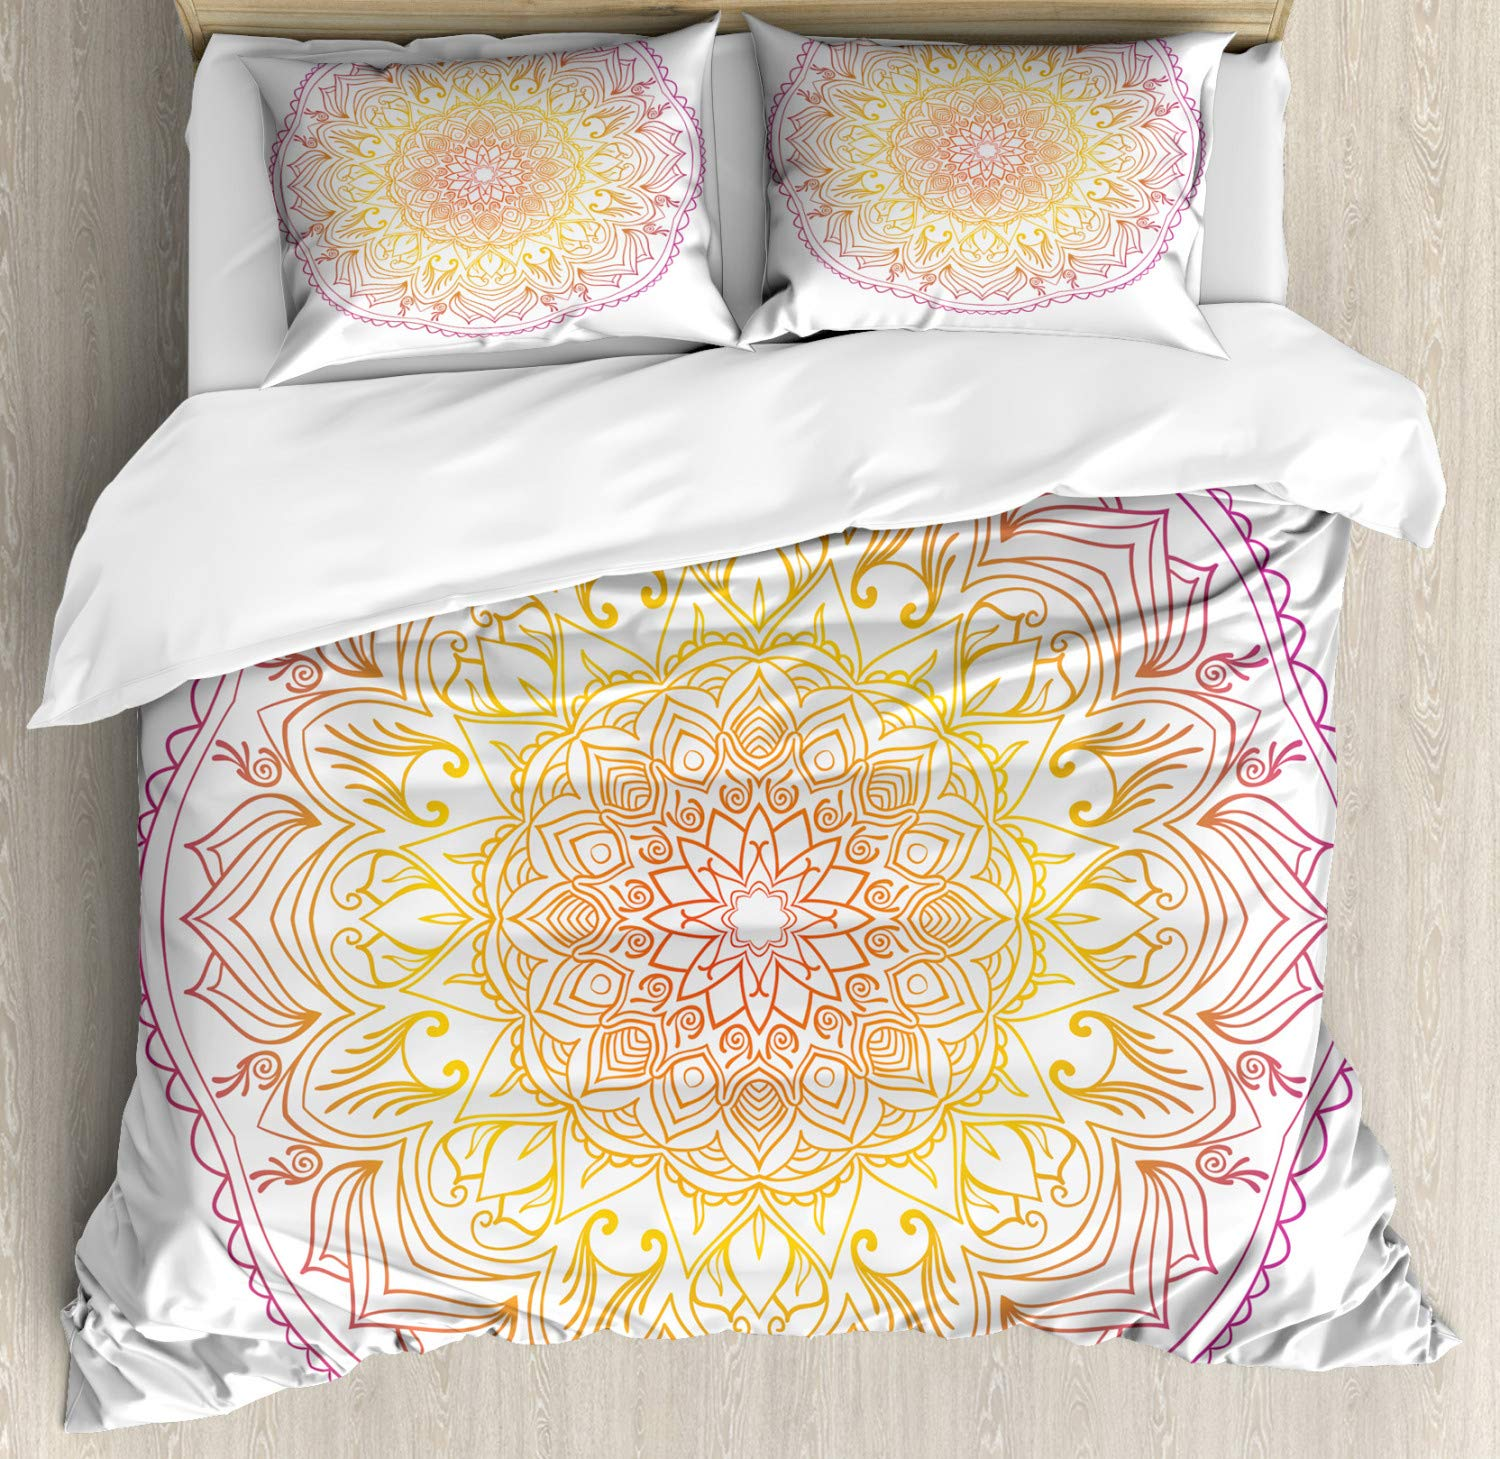 Ambesonne Rainbow Mandala Duvet Cover Set, Traditional Colorful Middle Eastern Design with Ombre Effect, Decorative 3 Piece Bedding Set with 2 Pillow Shams, Queen Size, Violet Orange